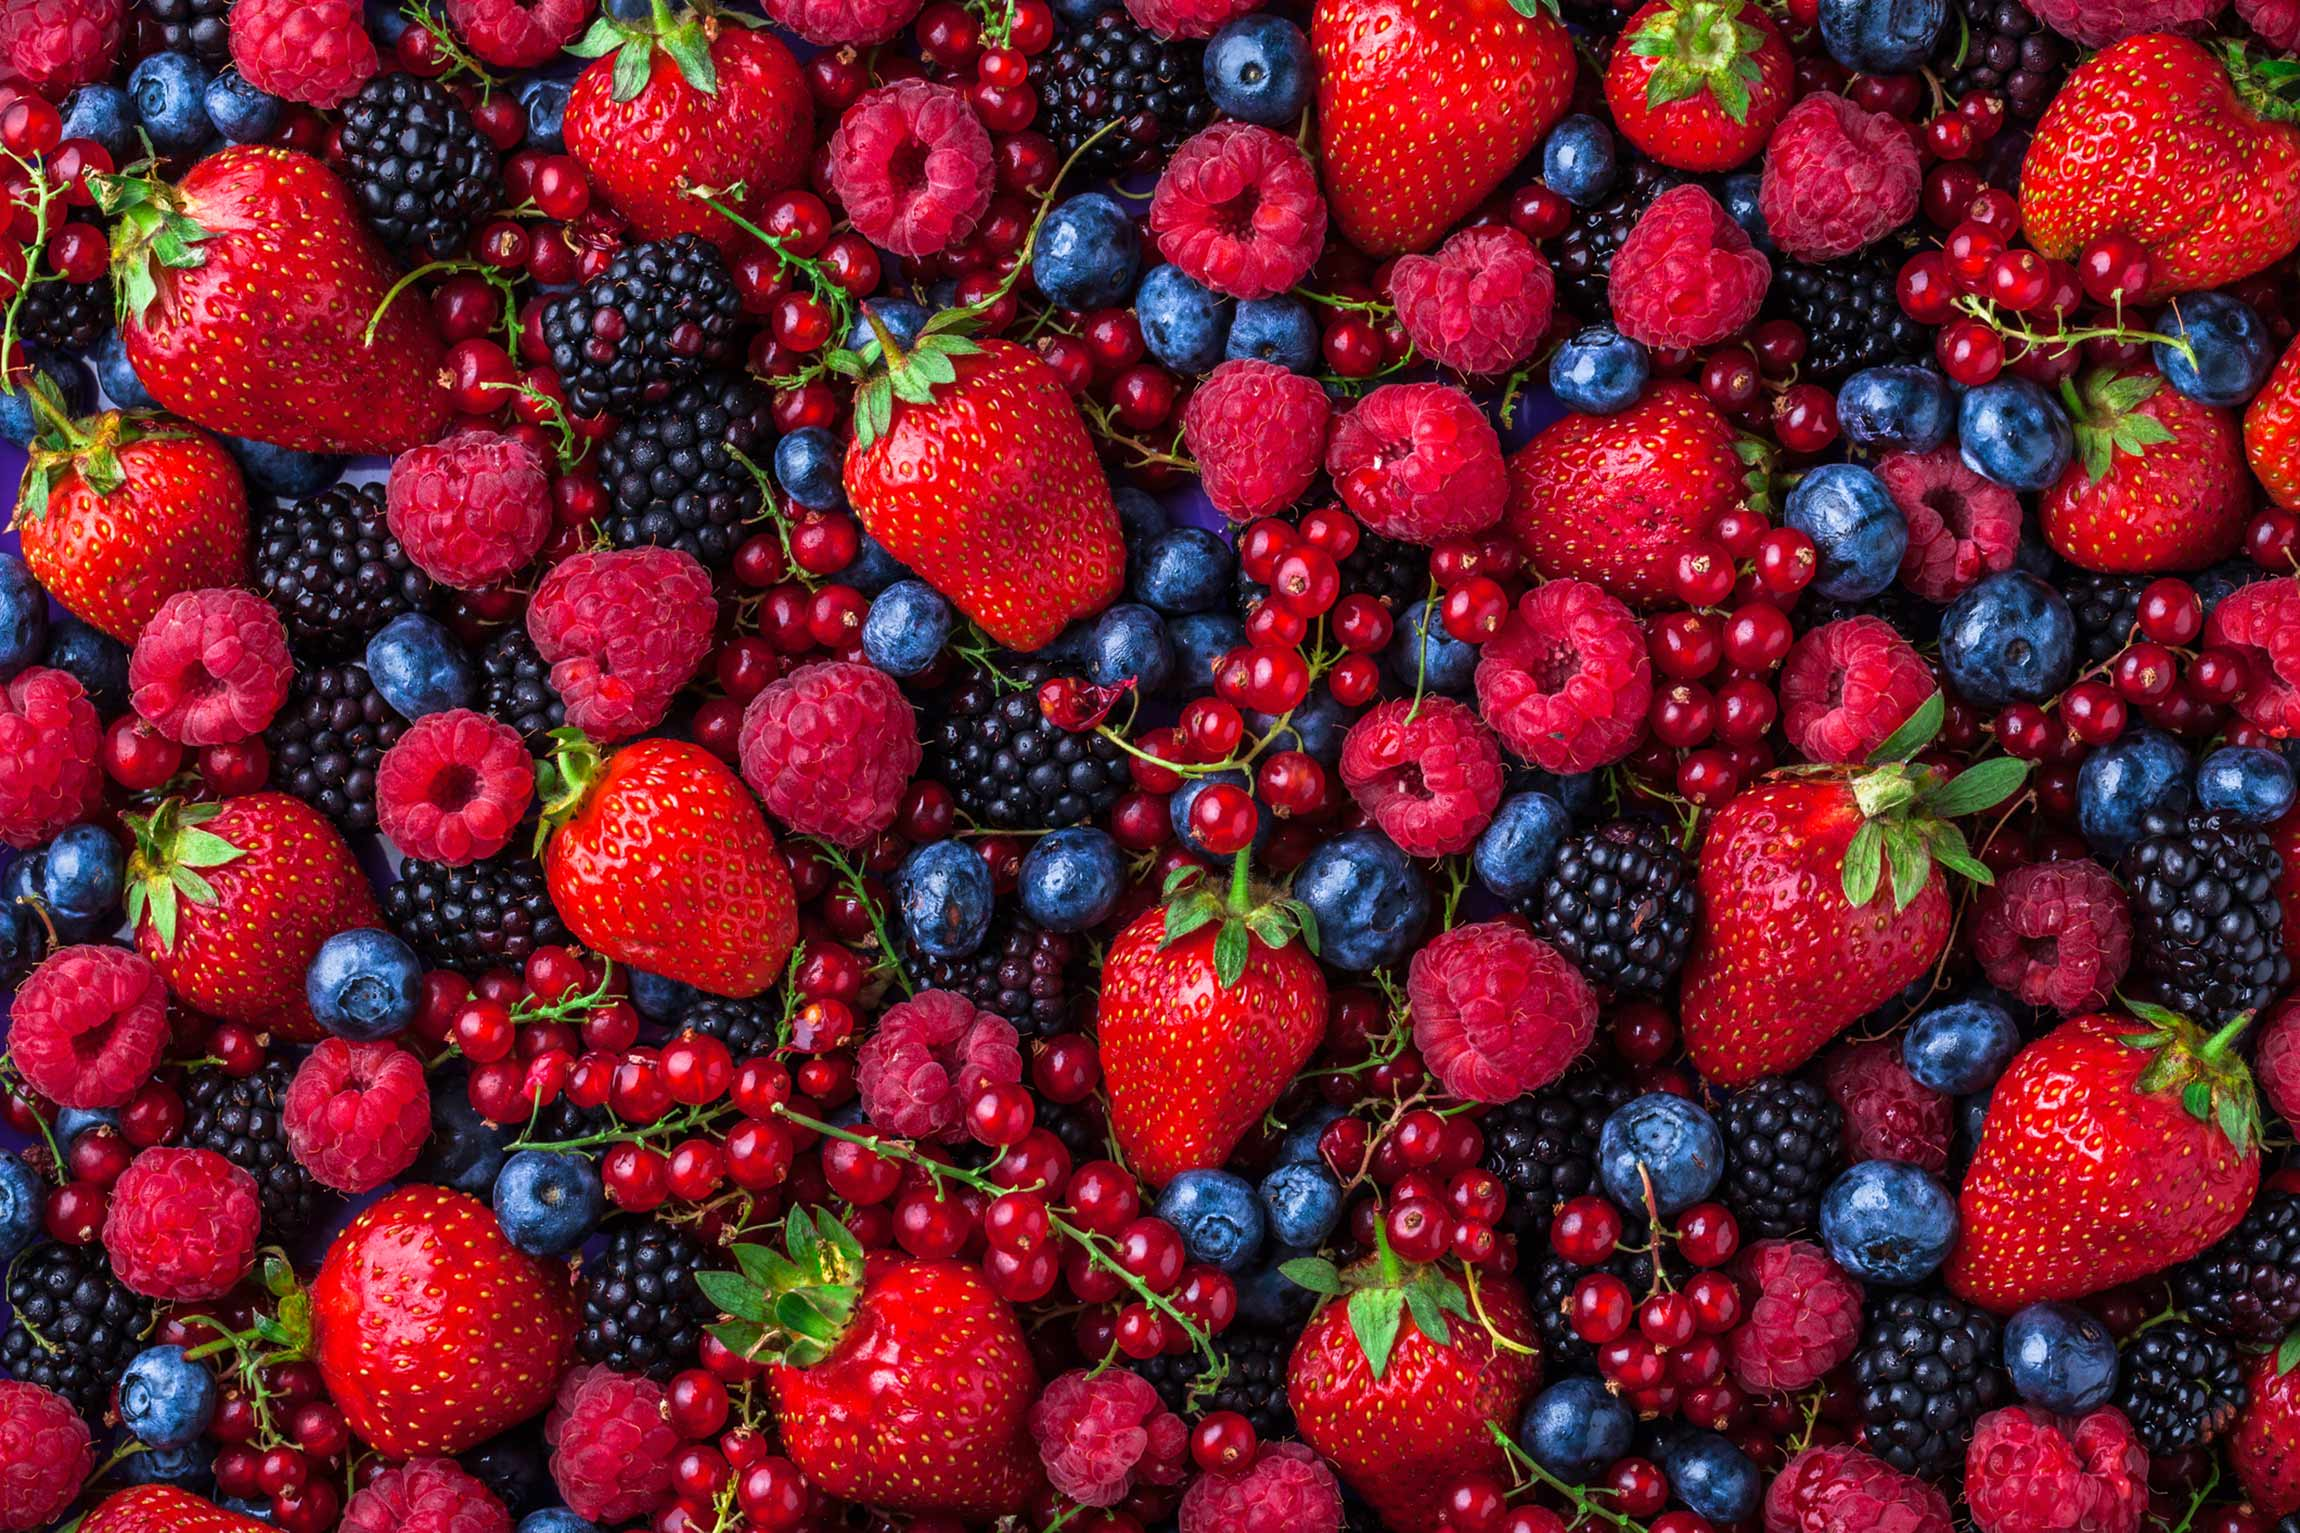 Healthy Snacks: Berries